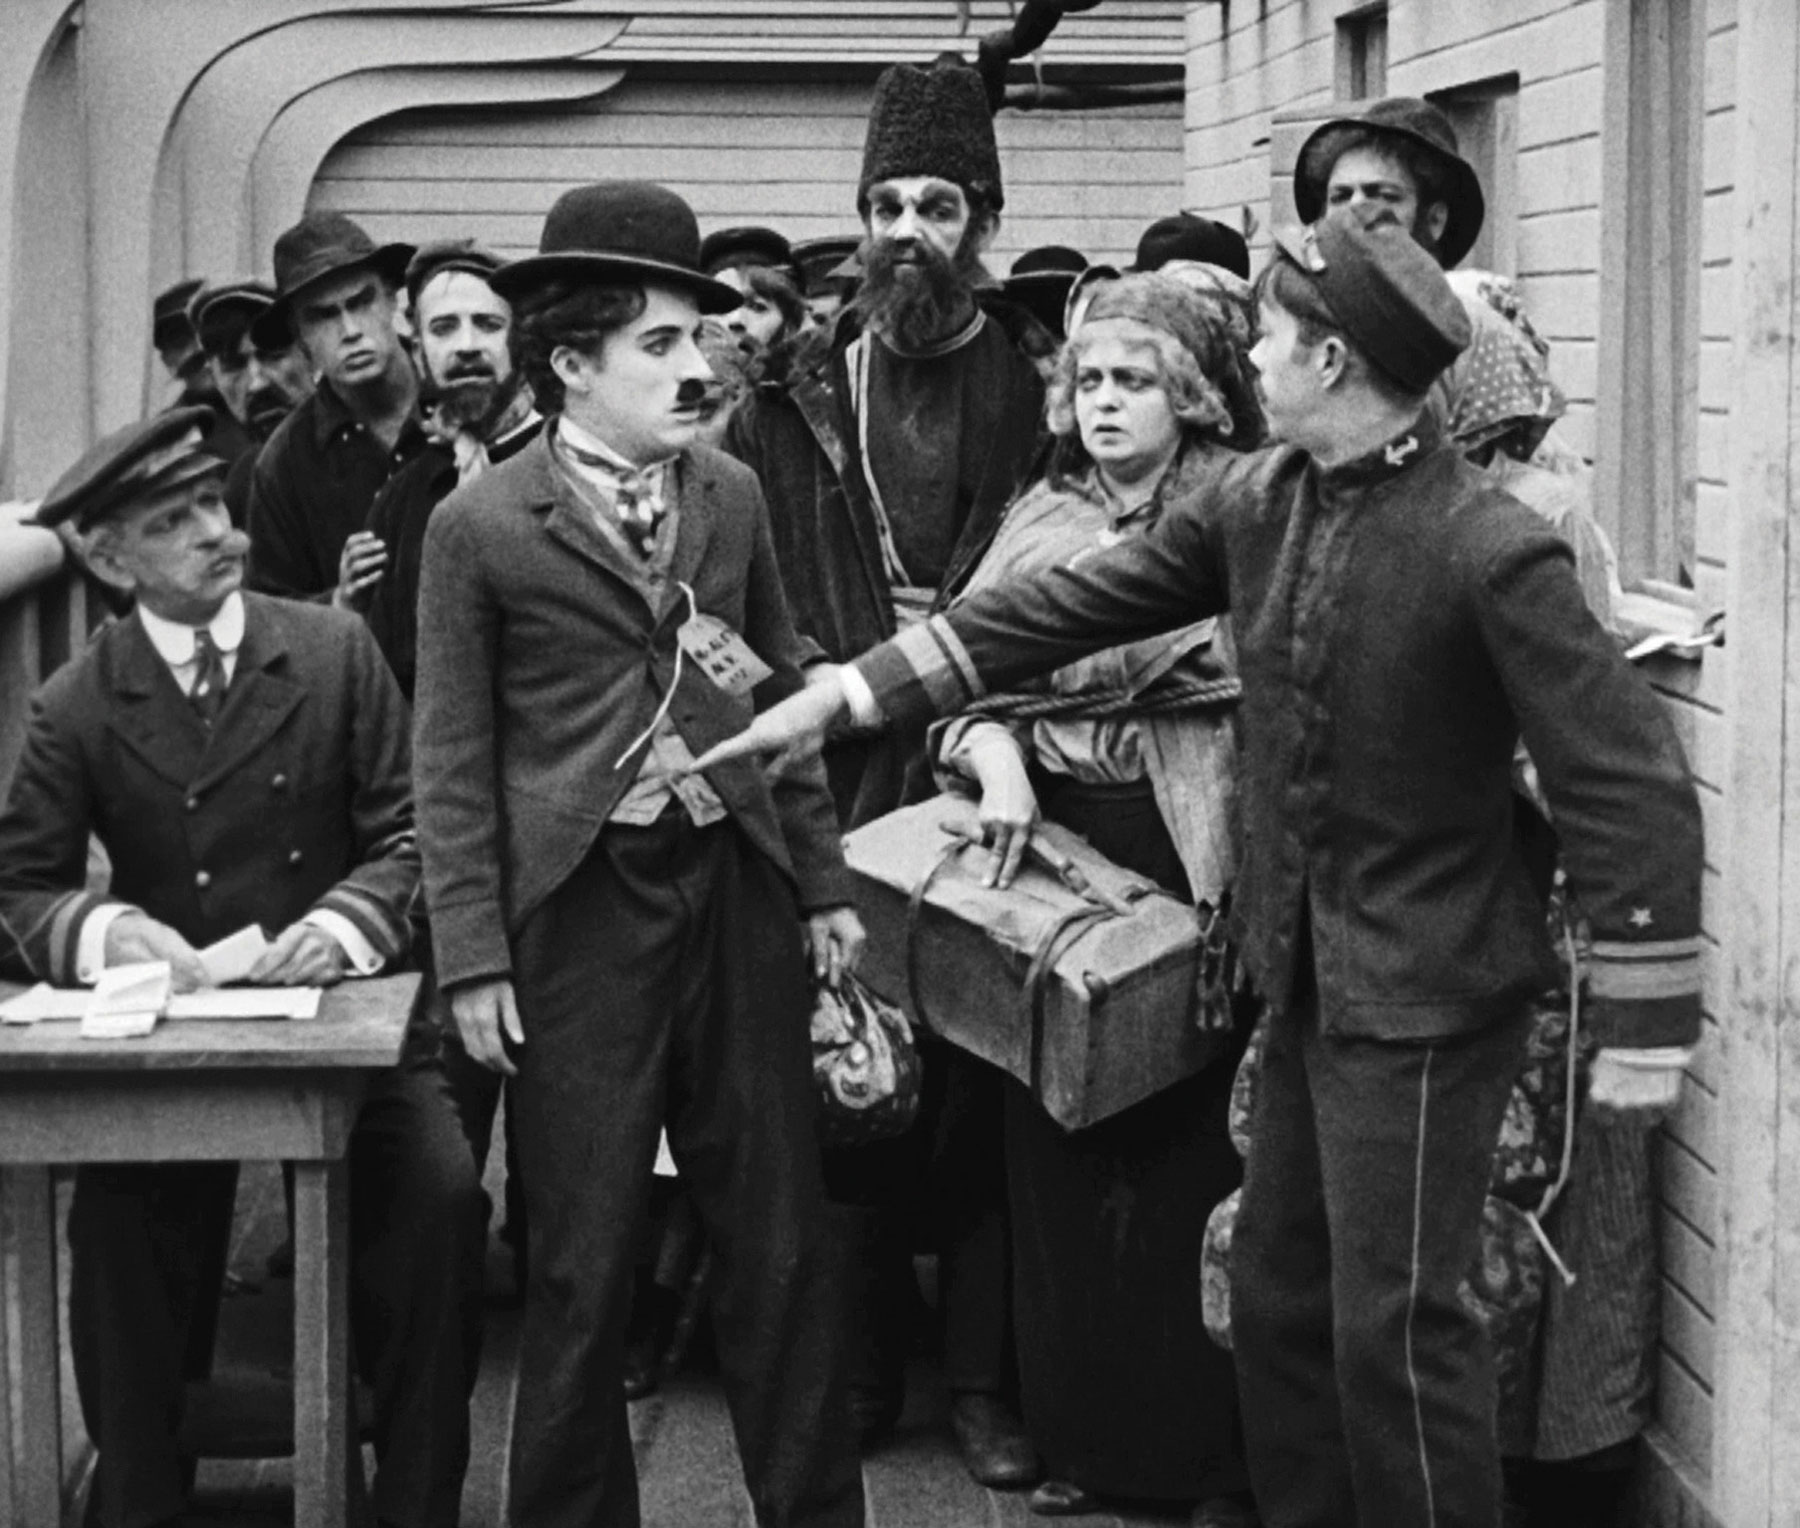 charlie chaplin immigrant essay The tramp, the immigrant, the comedian, the actor, the writer, the musician, the  composer, the director, the husband, the father, the genius.